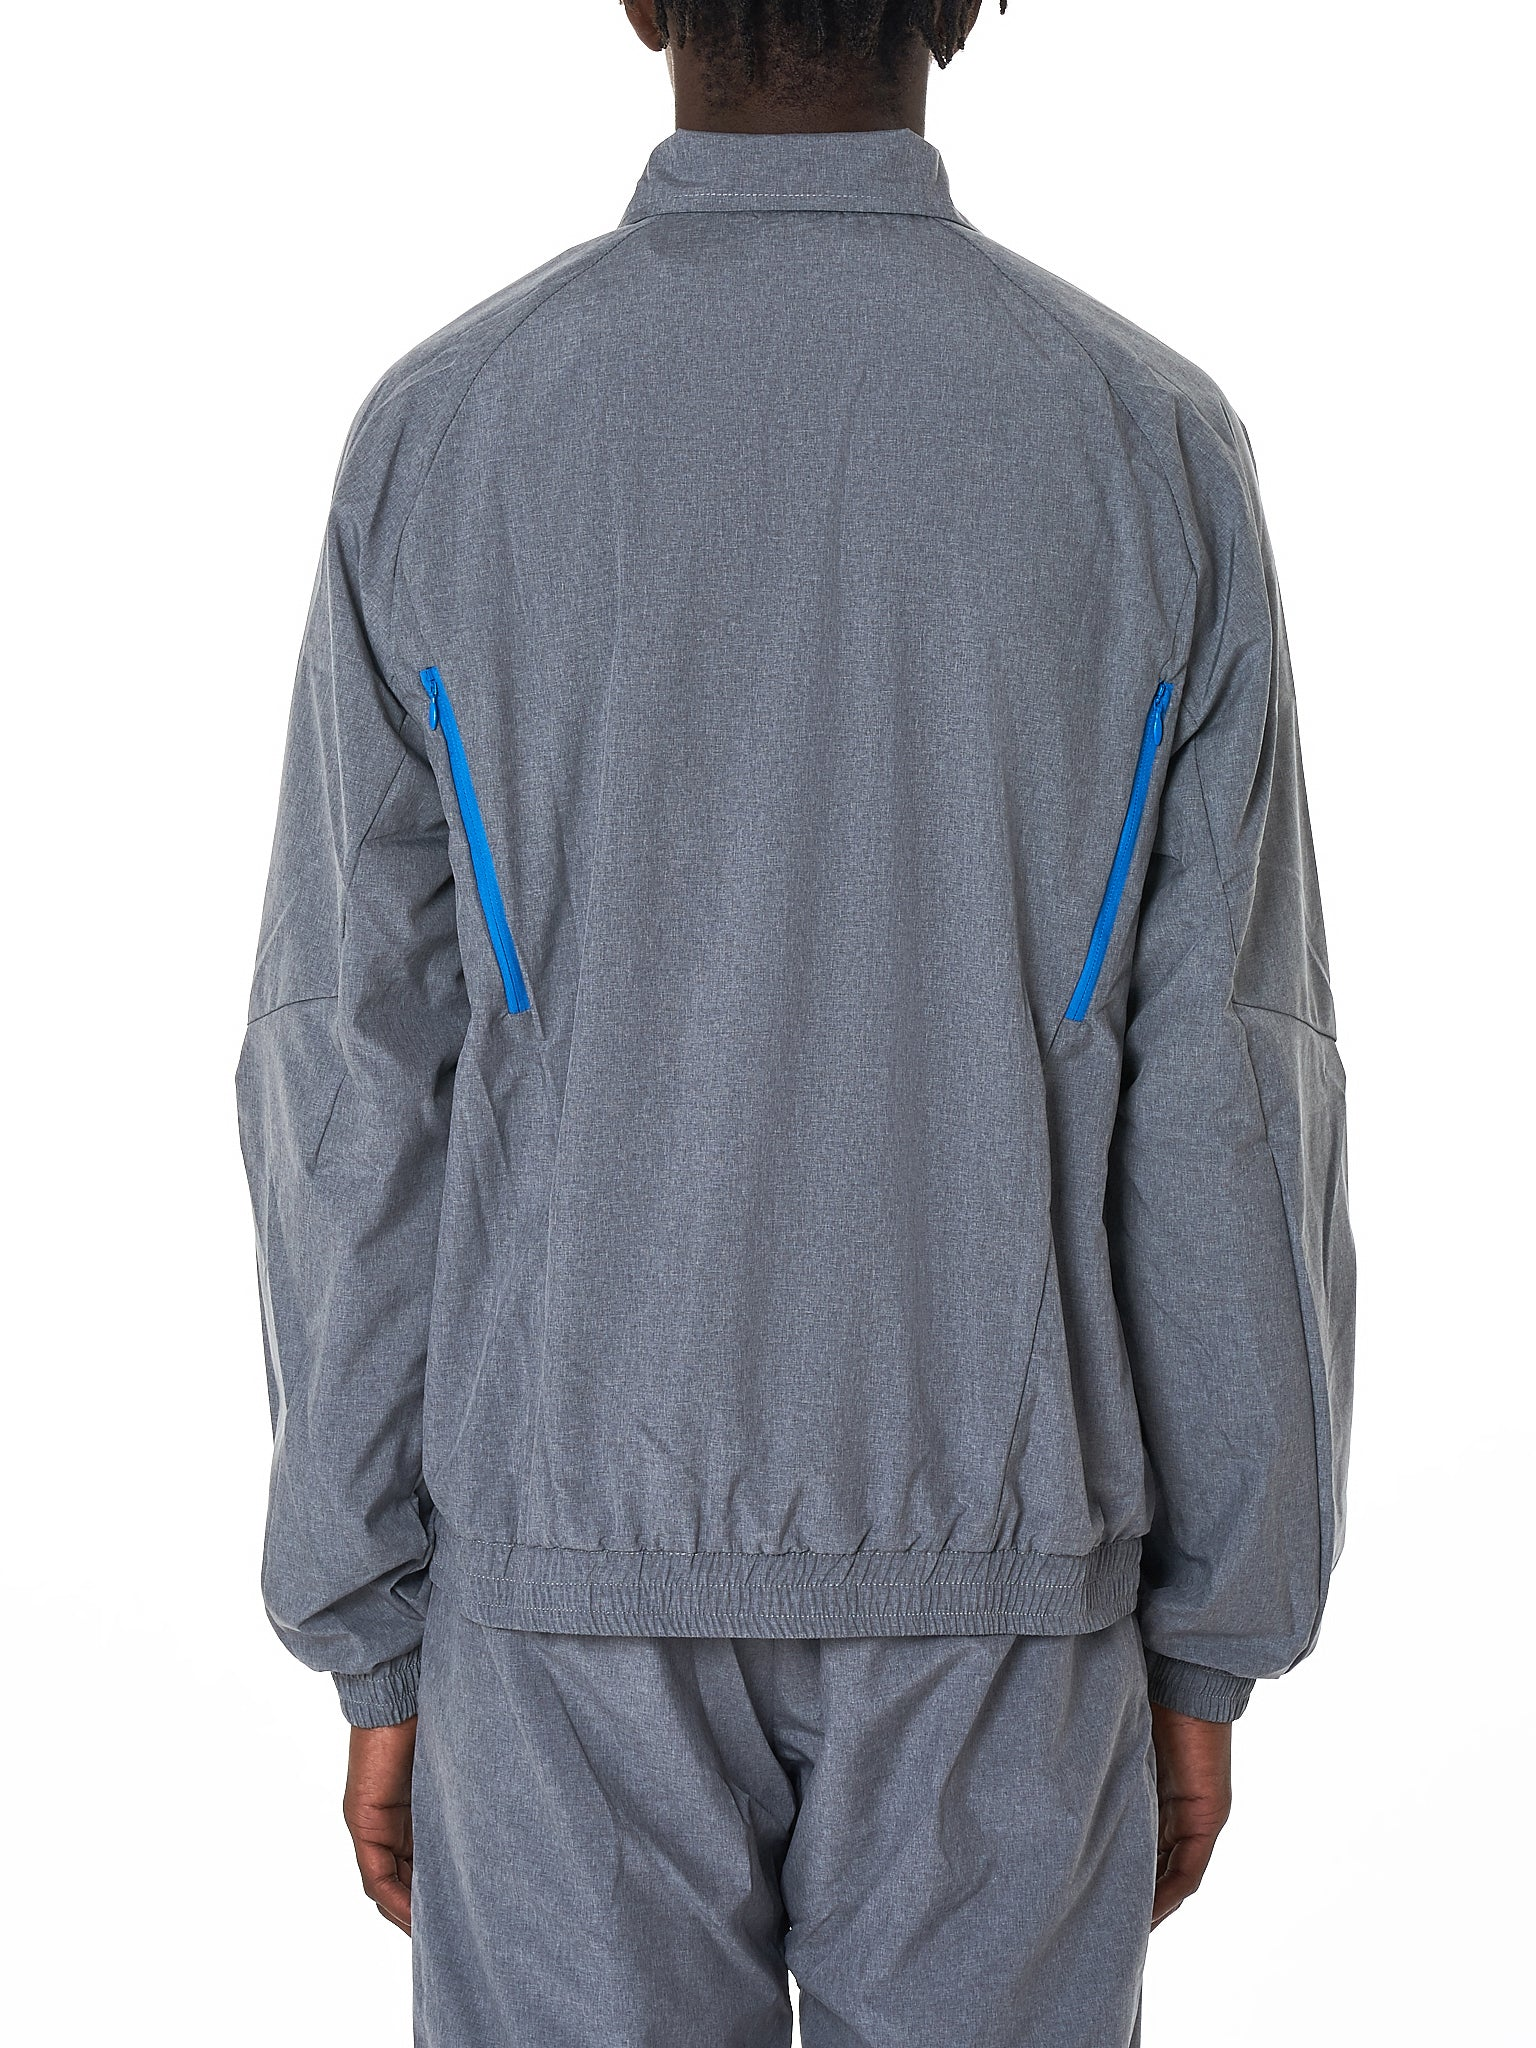 3.0 Signature Track Jacket (CWTT-20-GREY)